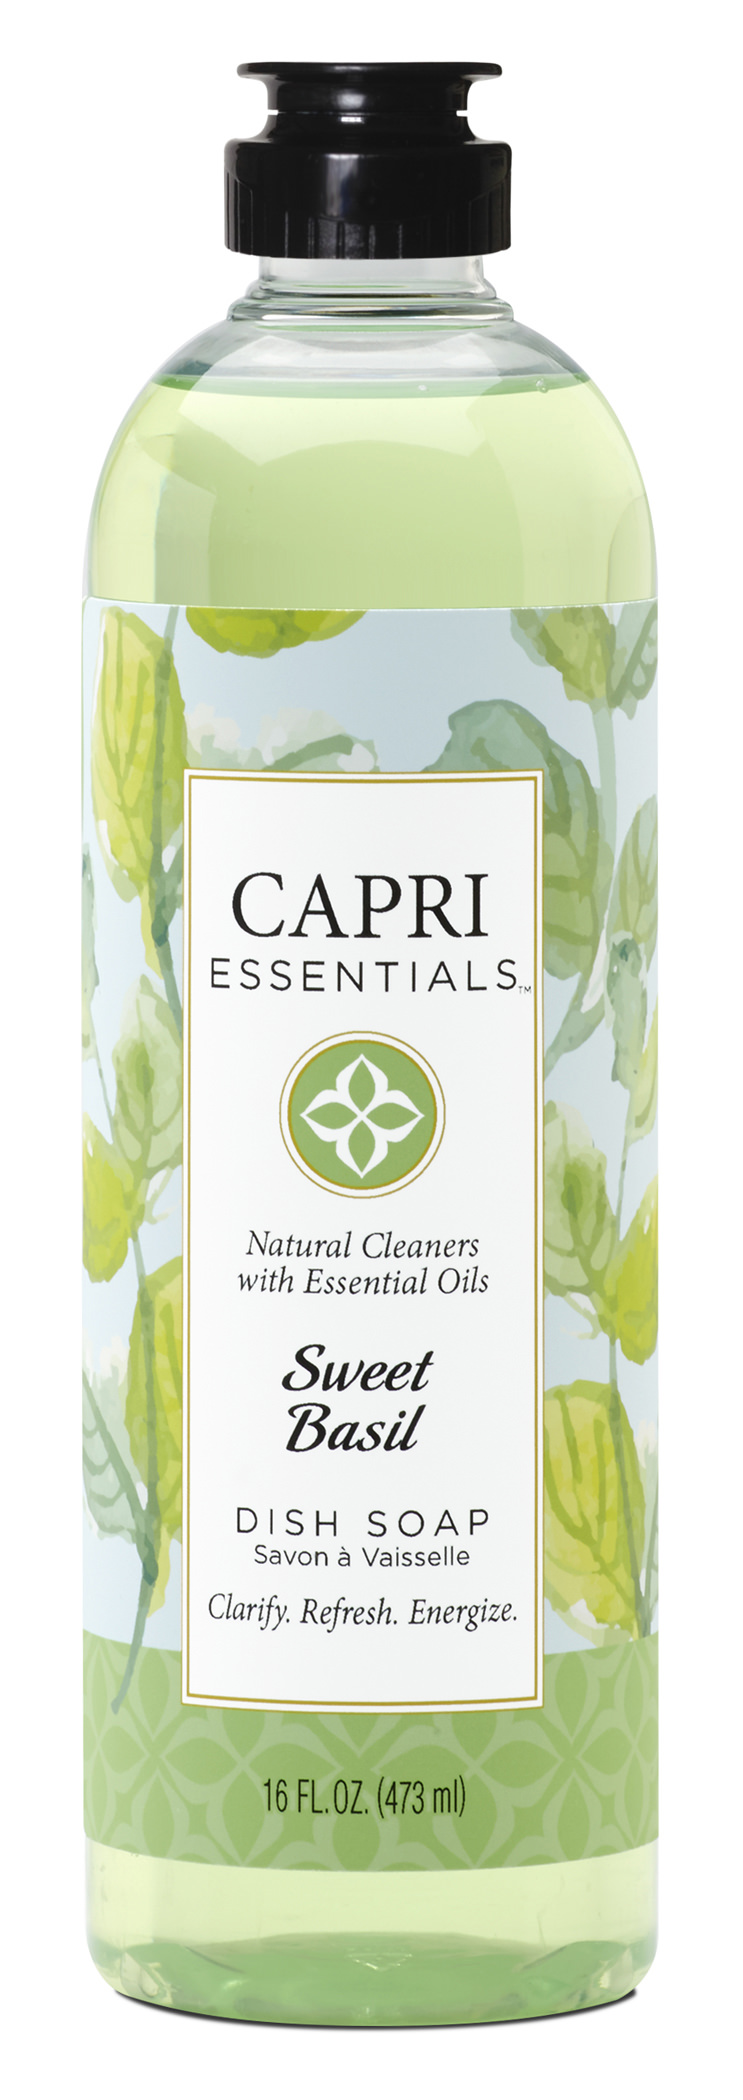 Capri Essentials Dish Soap - Sweet Basil